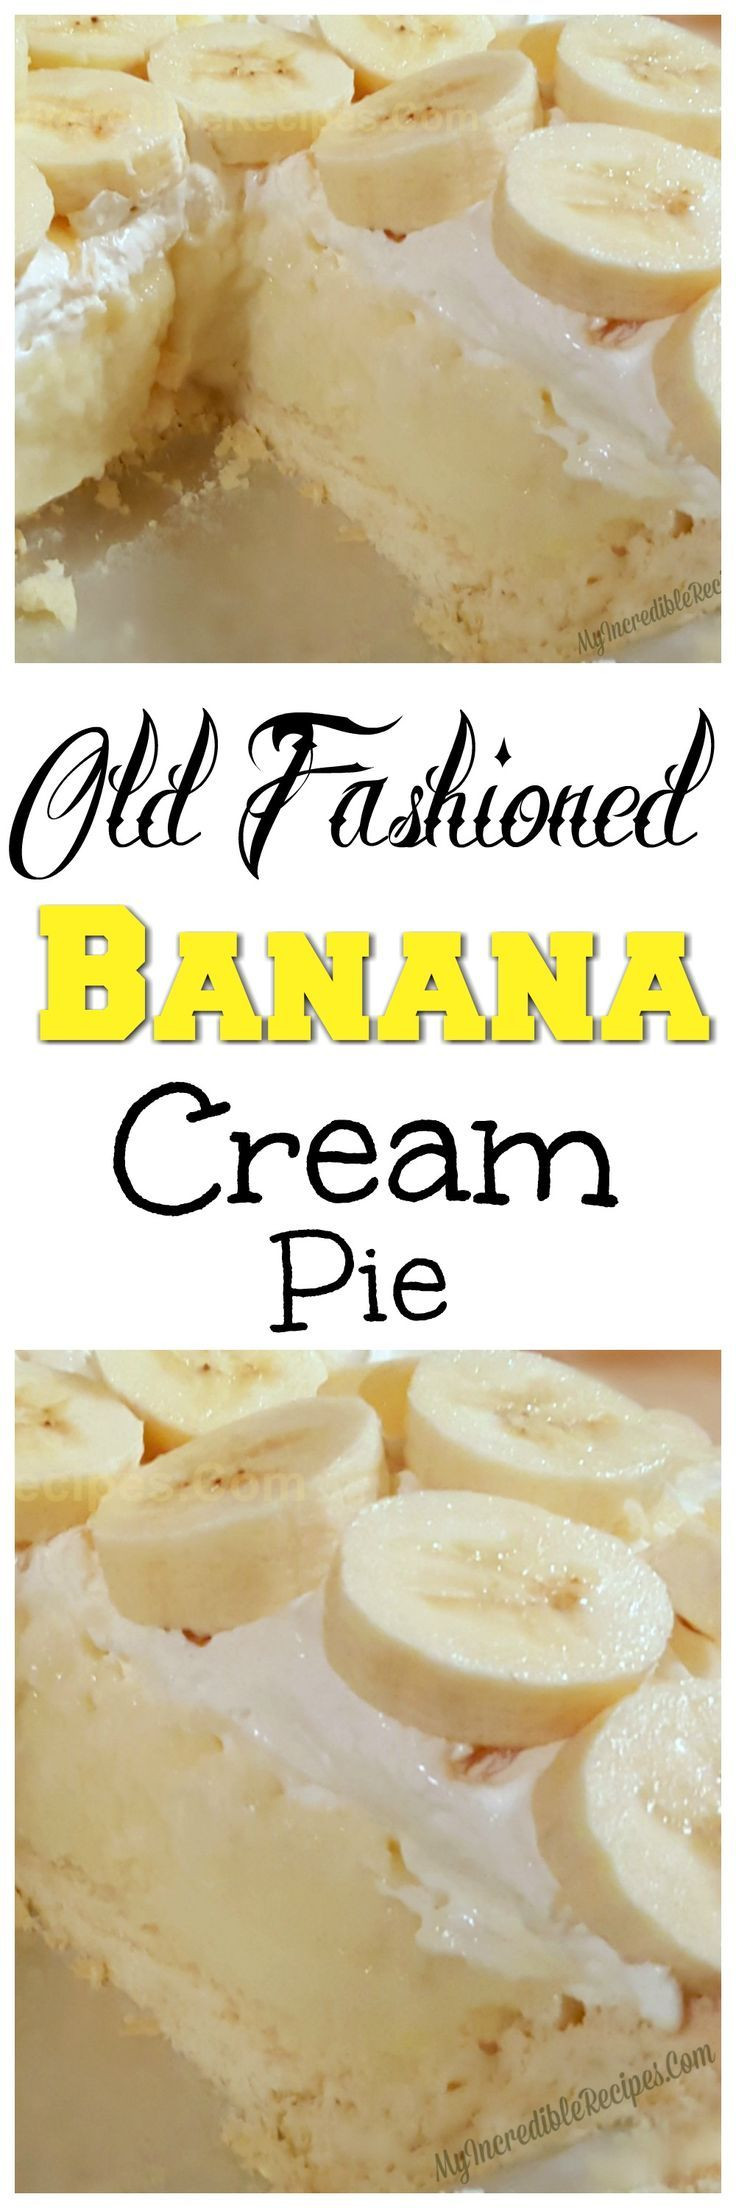 Old Fashioned Banana Cream Pie  926 best Desserts images on Pinterest